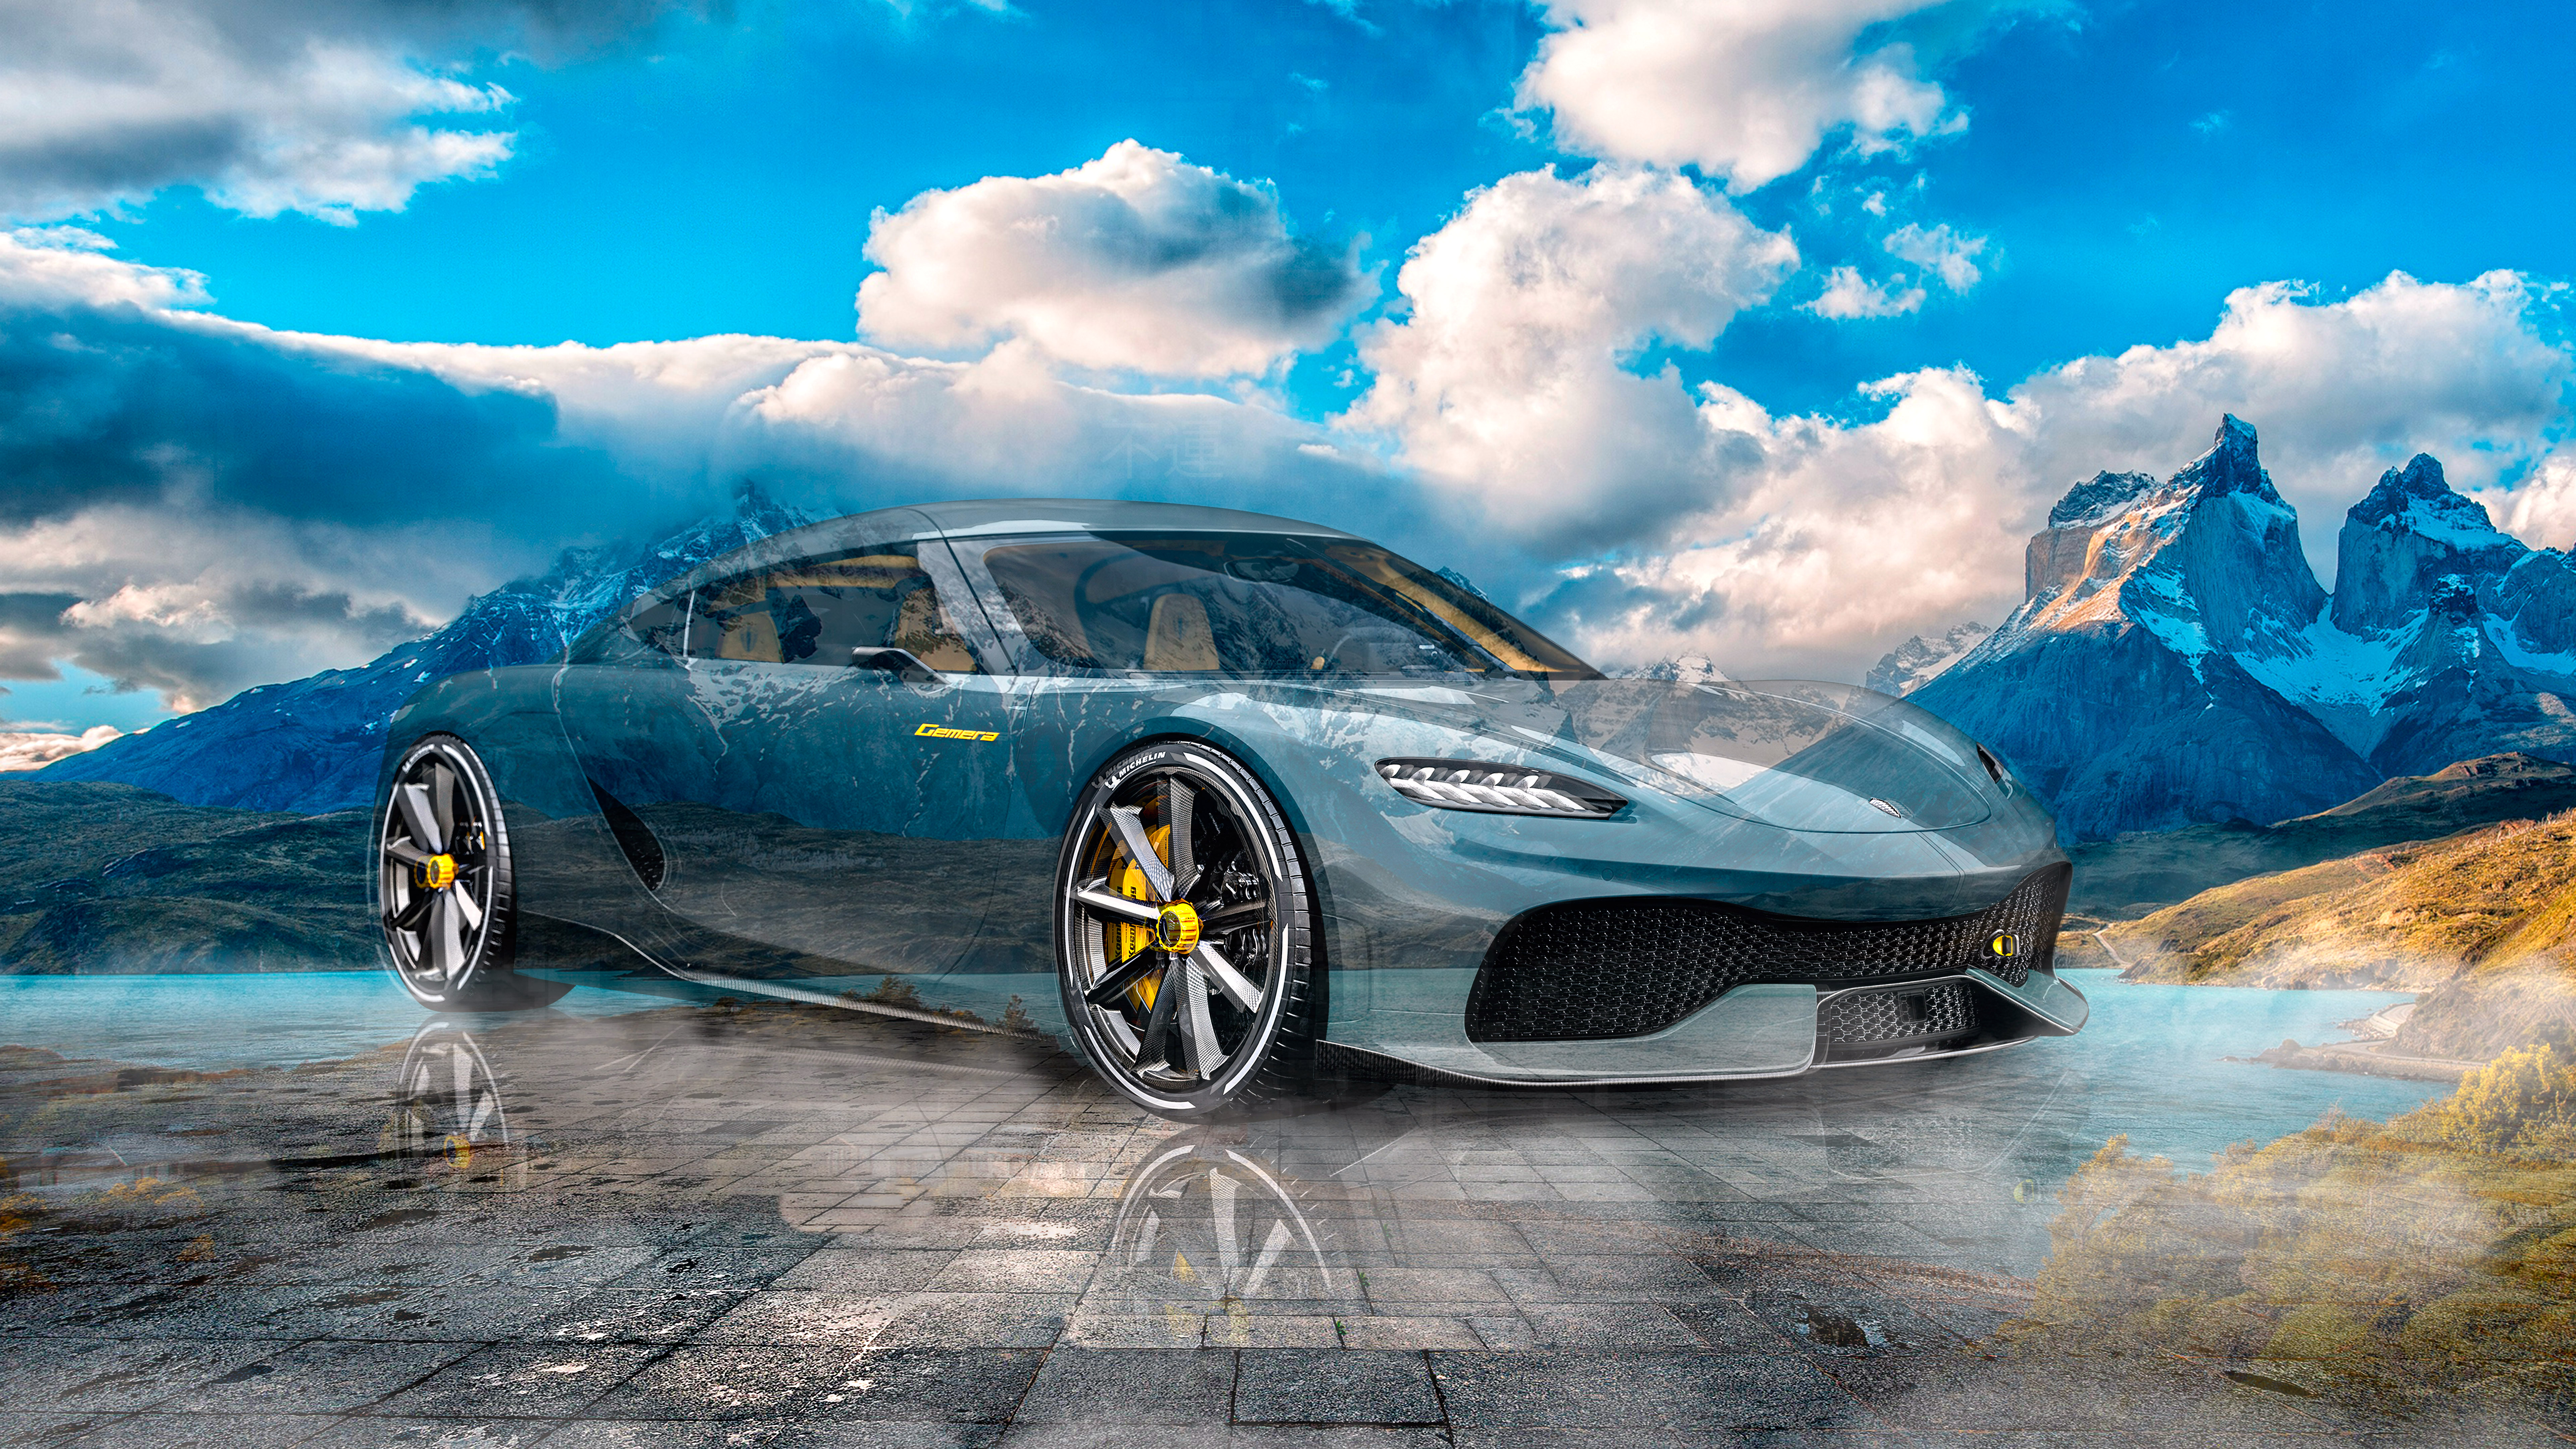 Koenigsegg-Gemera-Super-Crystal-Unlucky-Soul-Chili-Lake-Pehoe-Torres-Del-Paine-Sky-Mountains-Art-Car-2021-Multicolors-8K-Wallpapers-by-Tony-Kokhan-www.el-tony.com-image